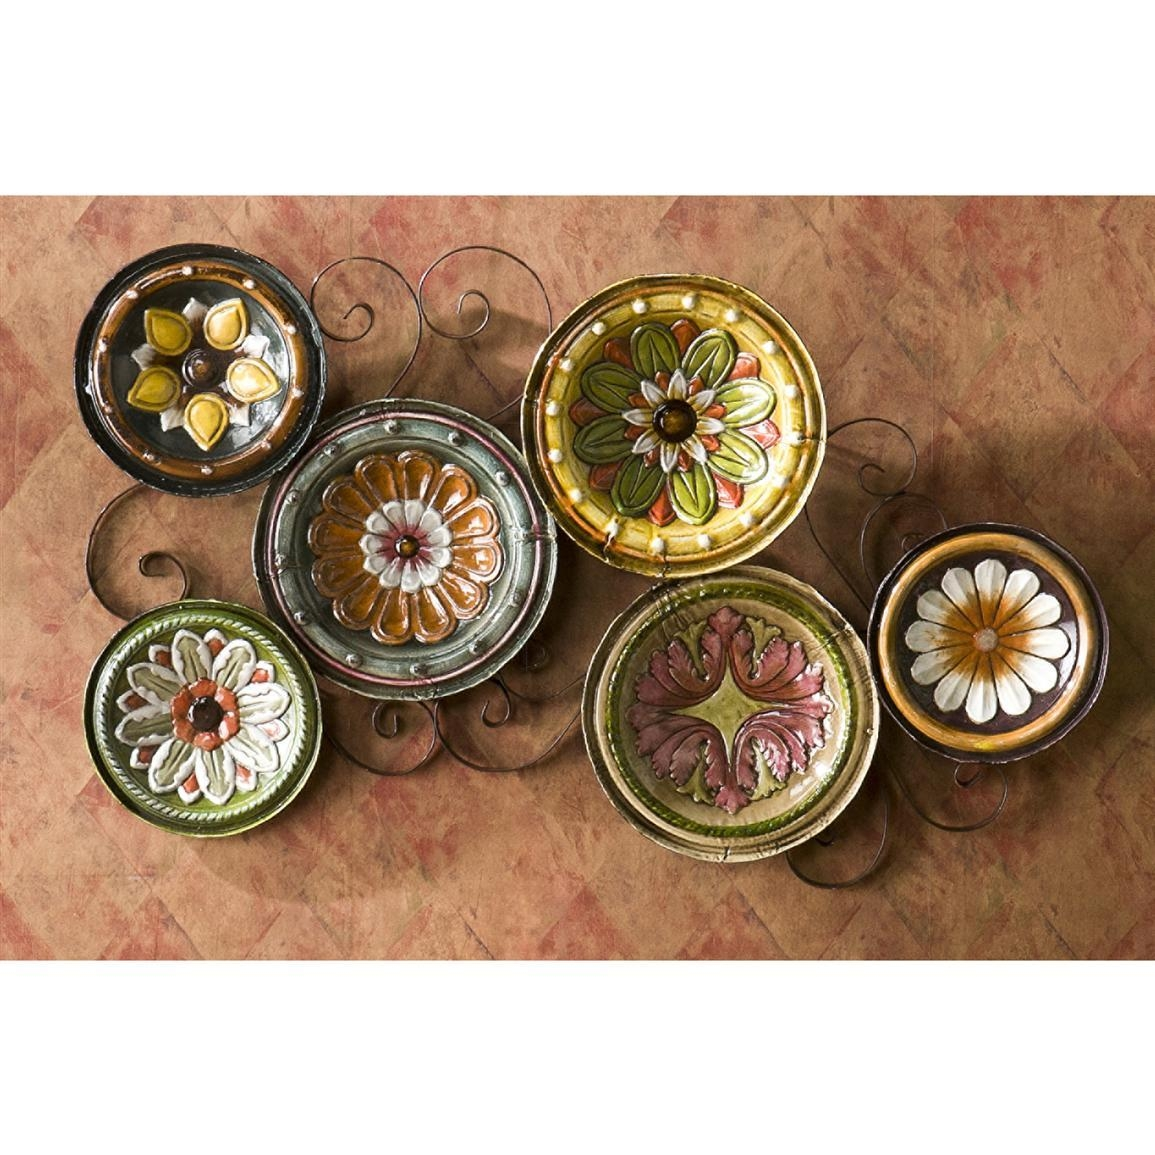 Beautiful Decorative Plates For Kitchen Wall A New Decorative Pertaining To Decorative Plates For Wall Art (View 3 of 20)